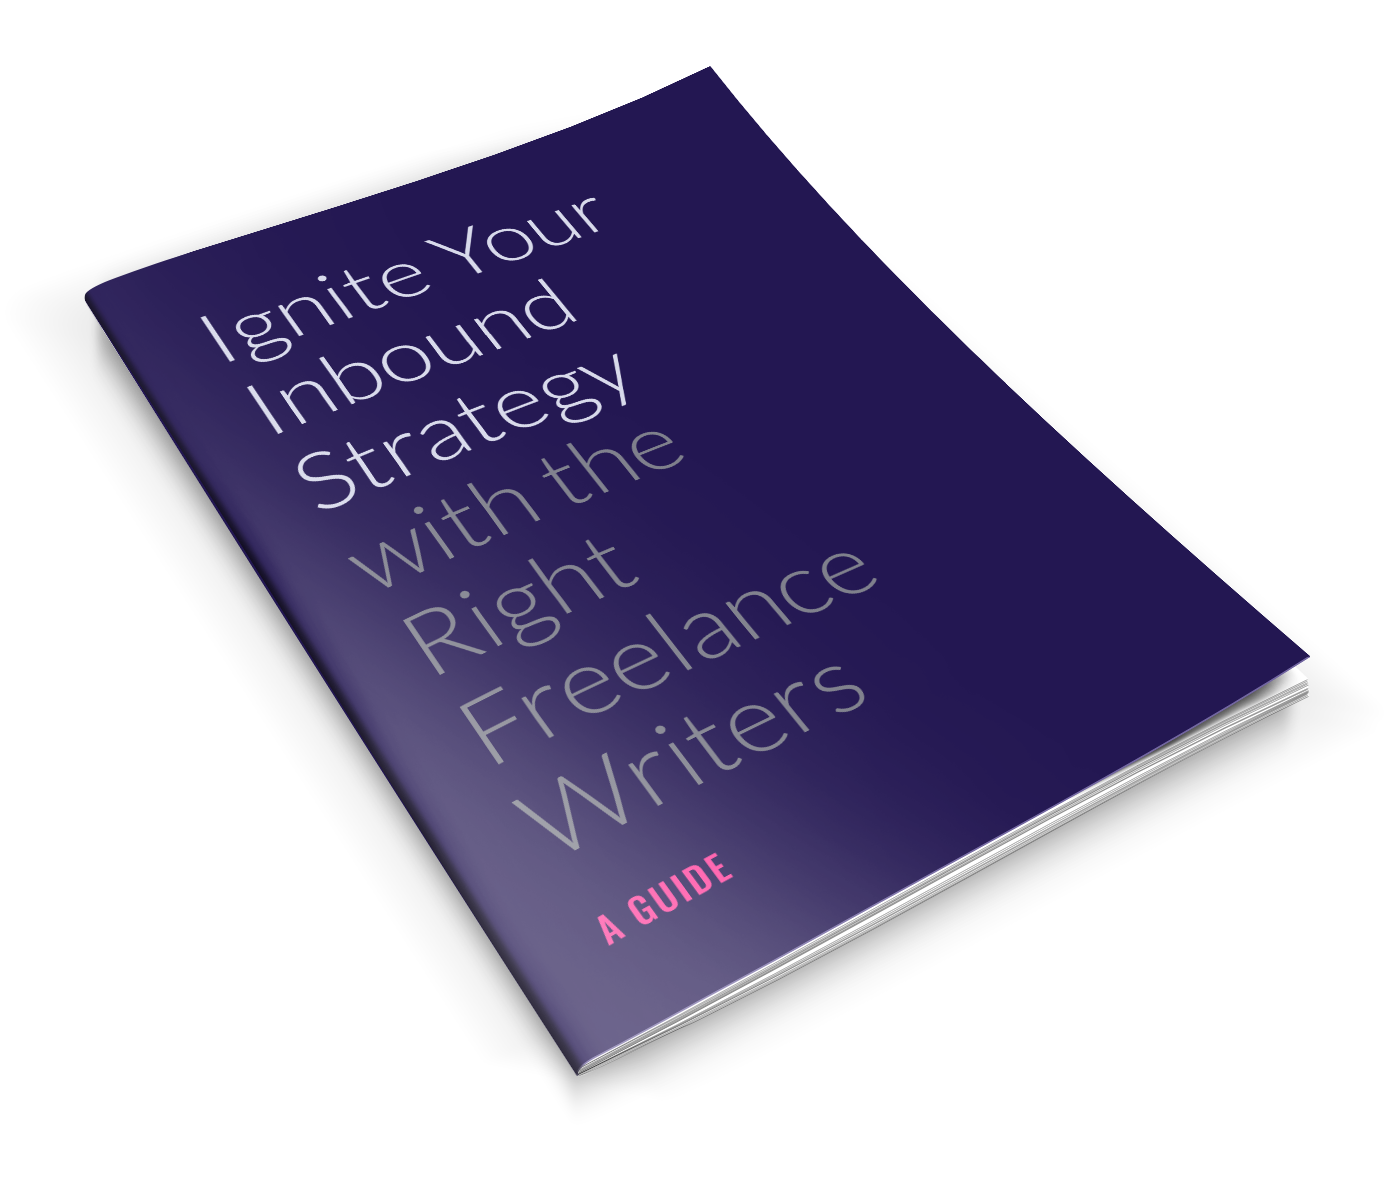 ignite inbound strategy hubspot ebook